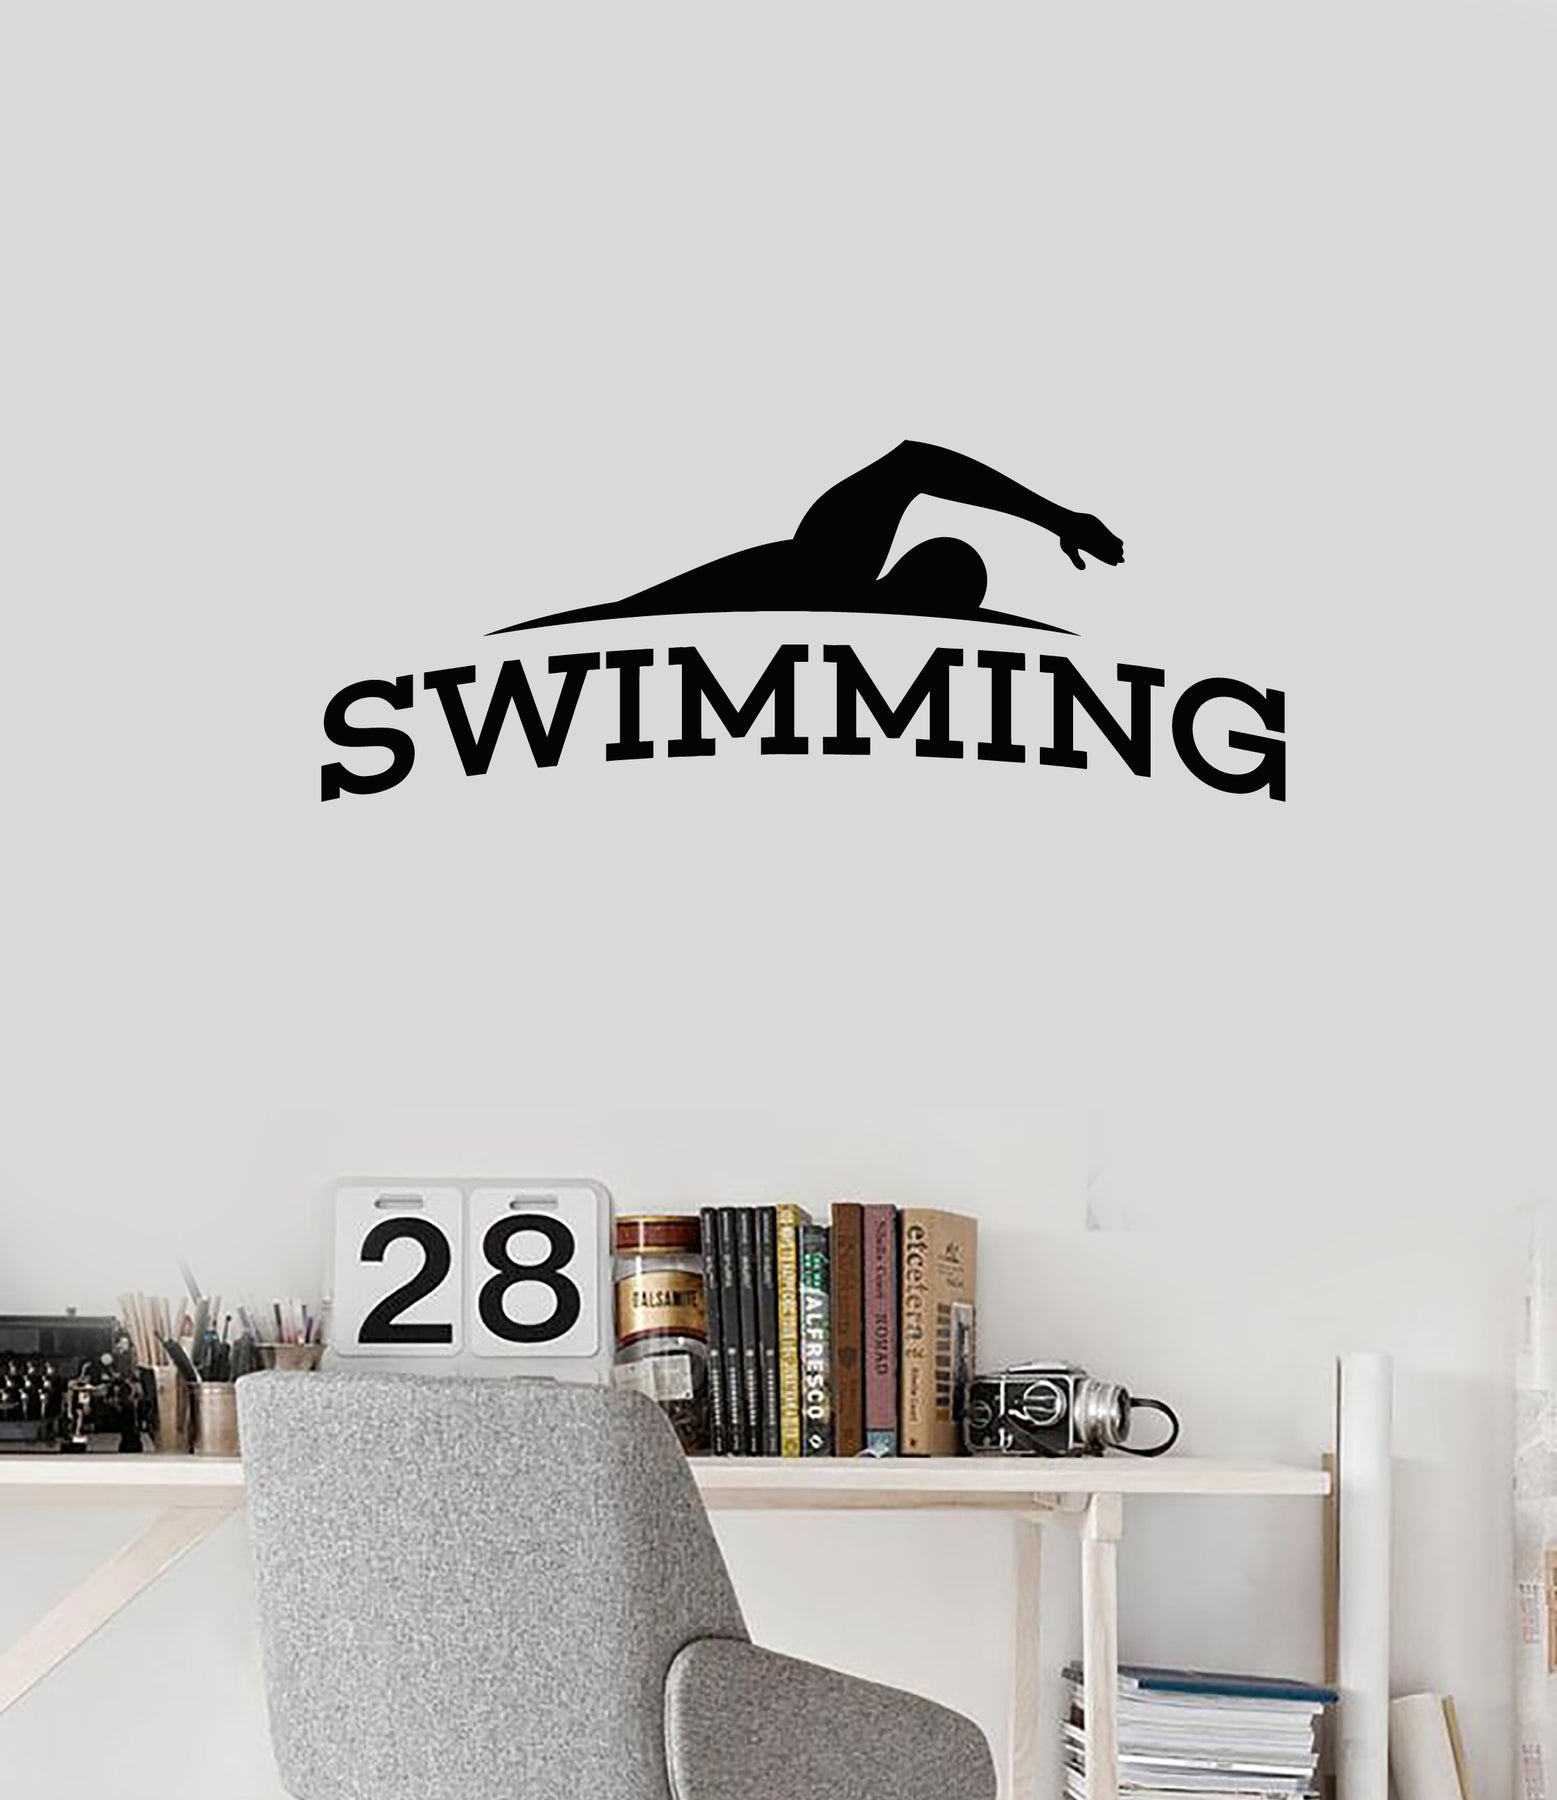 Vinyl Wall Decal Swimming Pool Word Swimmer Swim Teen Room Decor Stickers  Mural (ig6120)